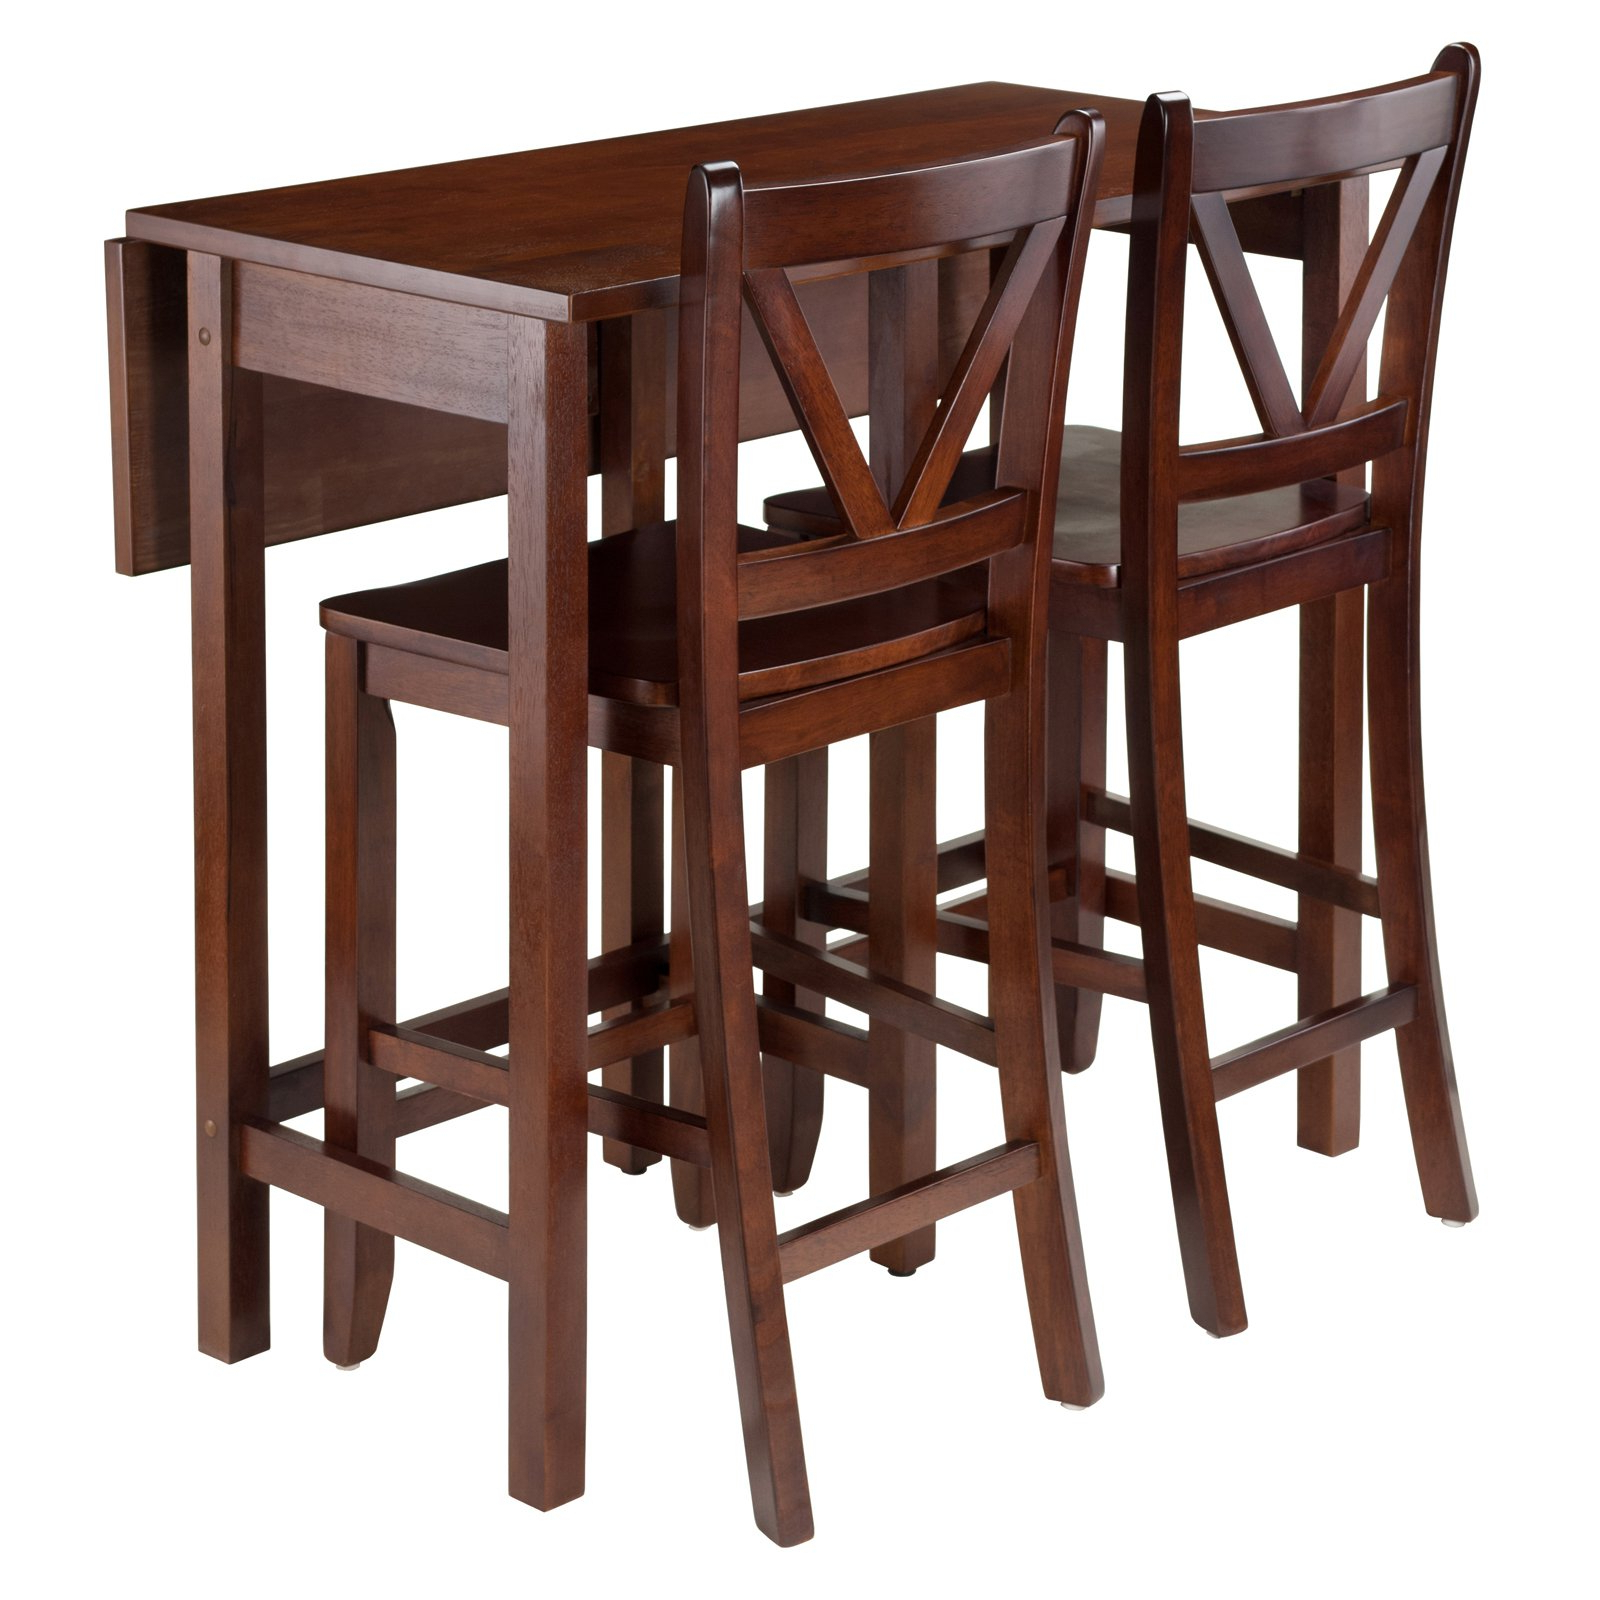 Widely Used Winsome Trading Lynnwood 3 Piece Counter Height Dining Table Set Intended For Bettencourt 3 Piece Counter Height Dining Sets (View 11 of 20)